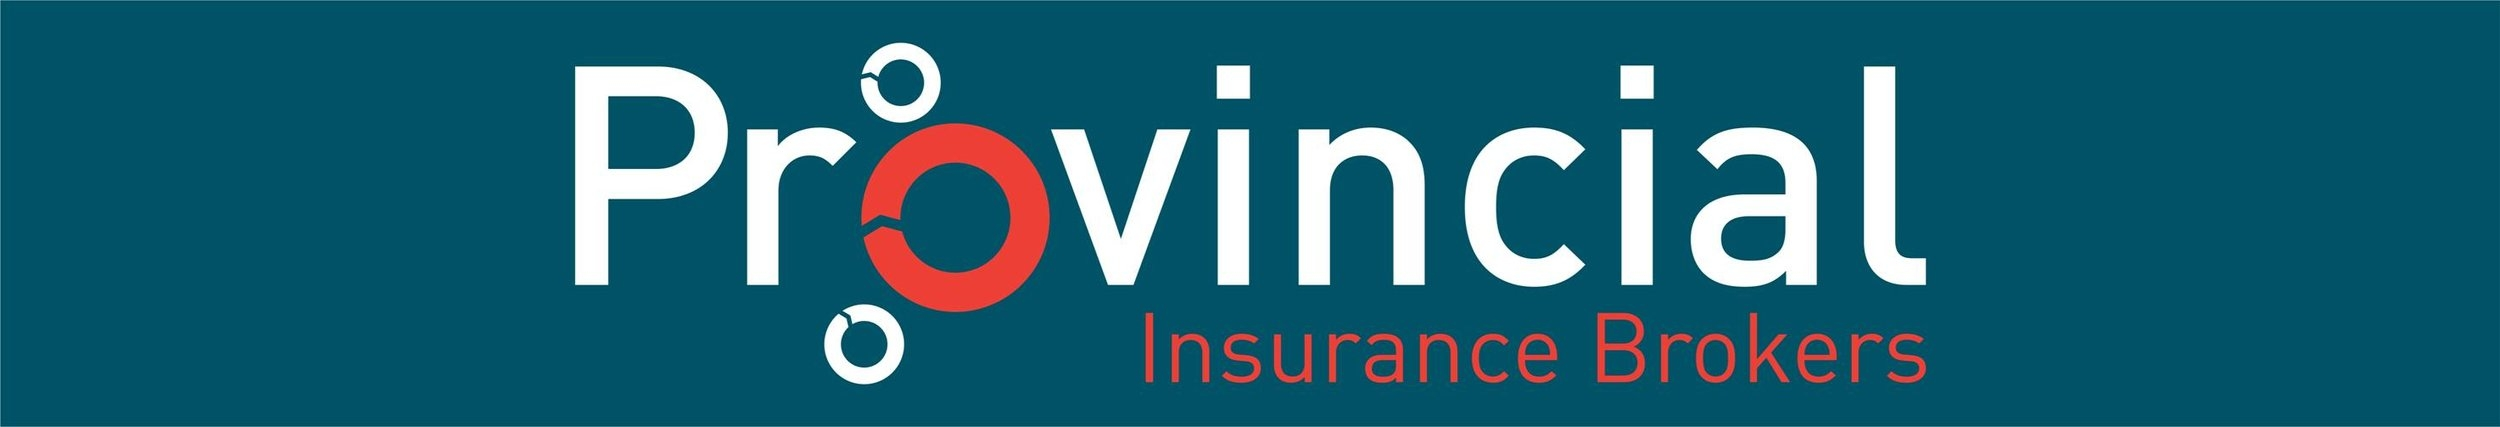 Provincial Insurance Logo Dark Background.jpg